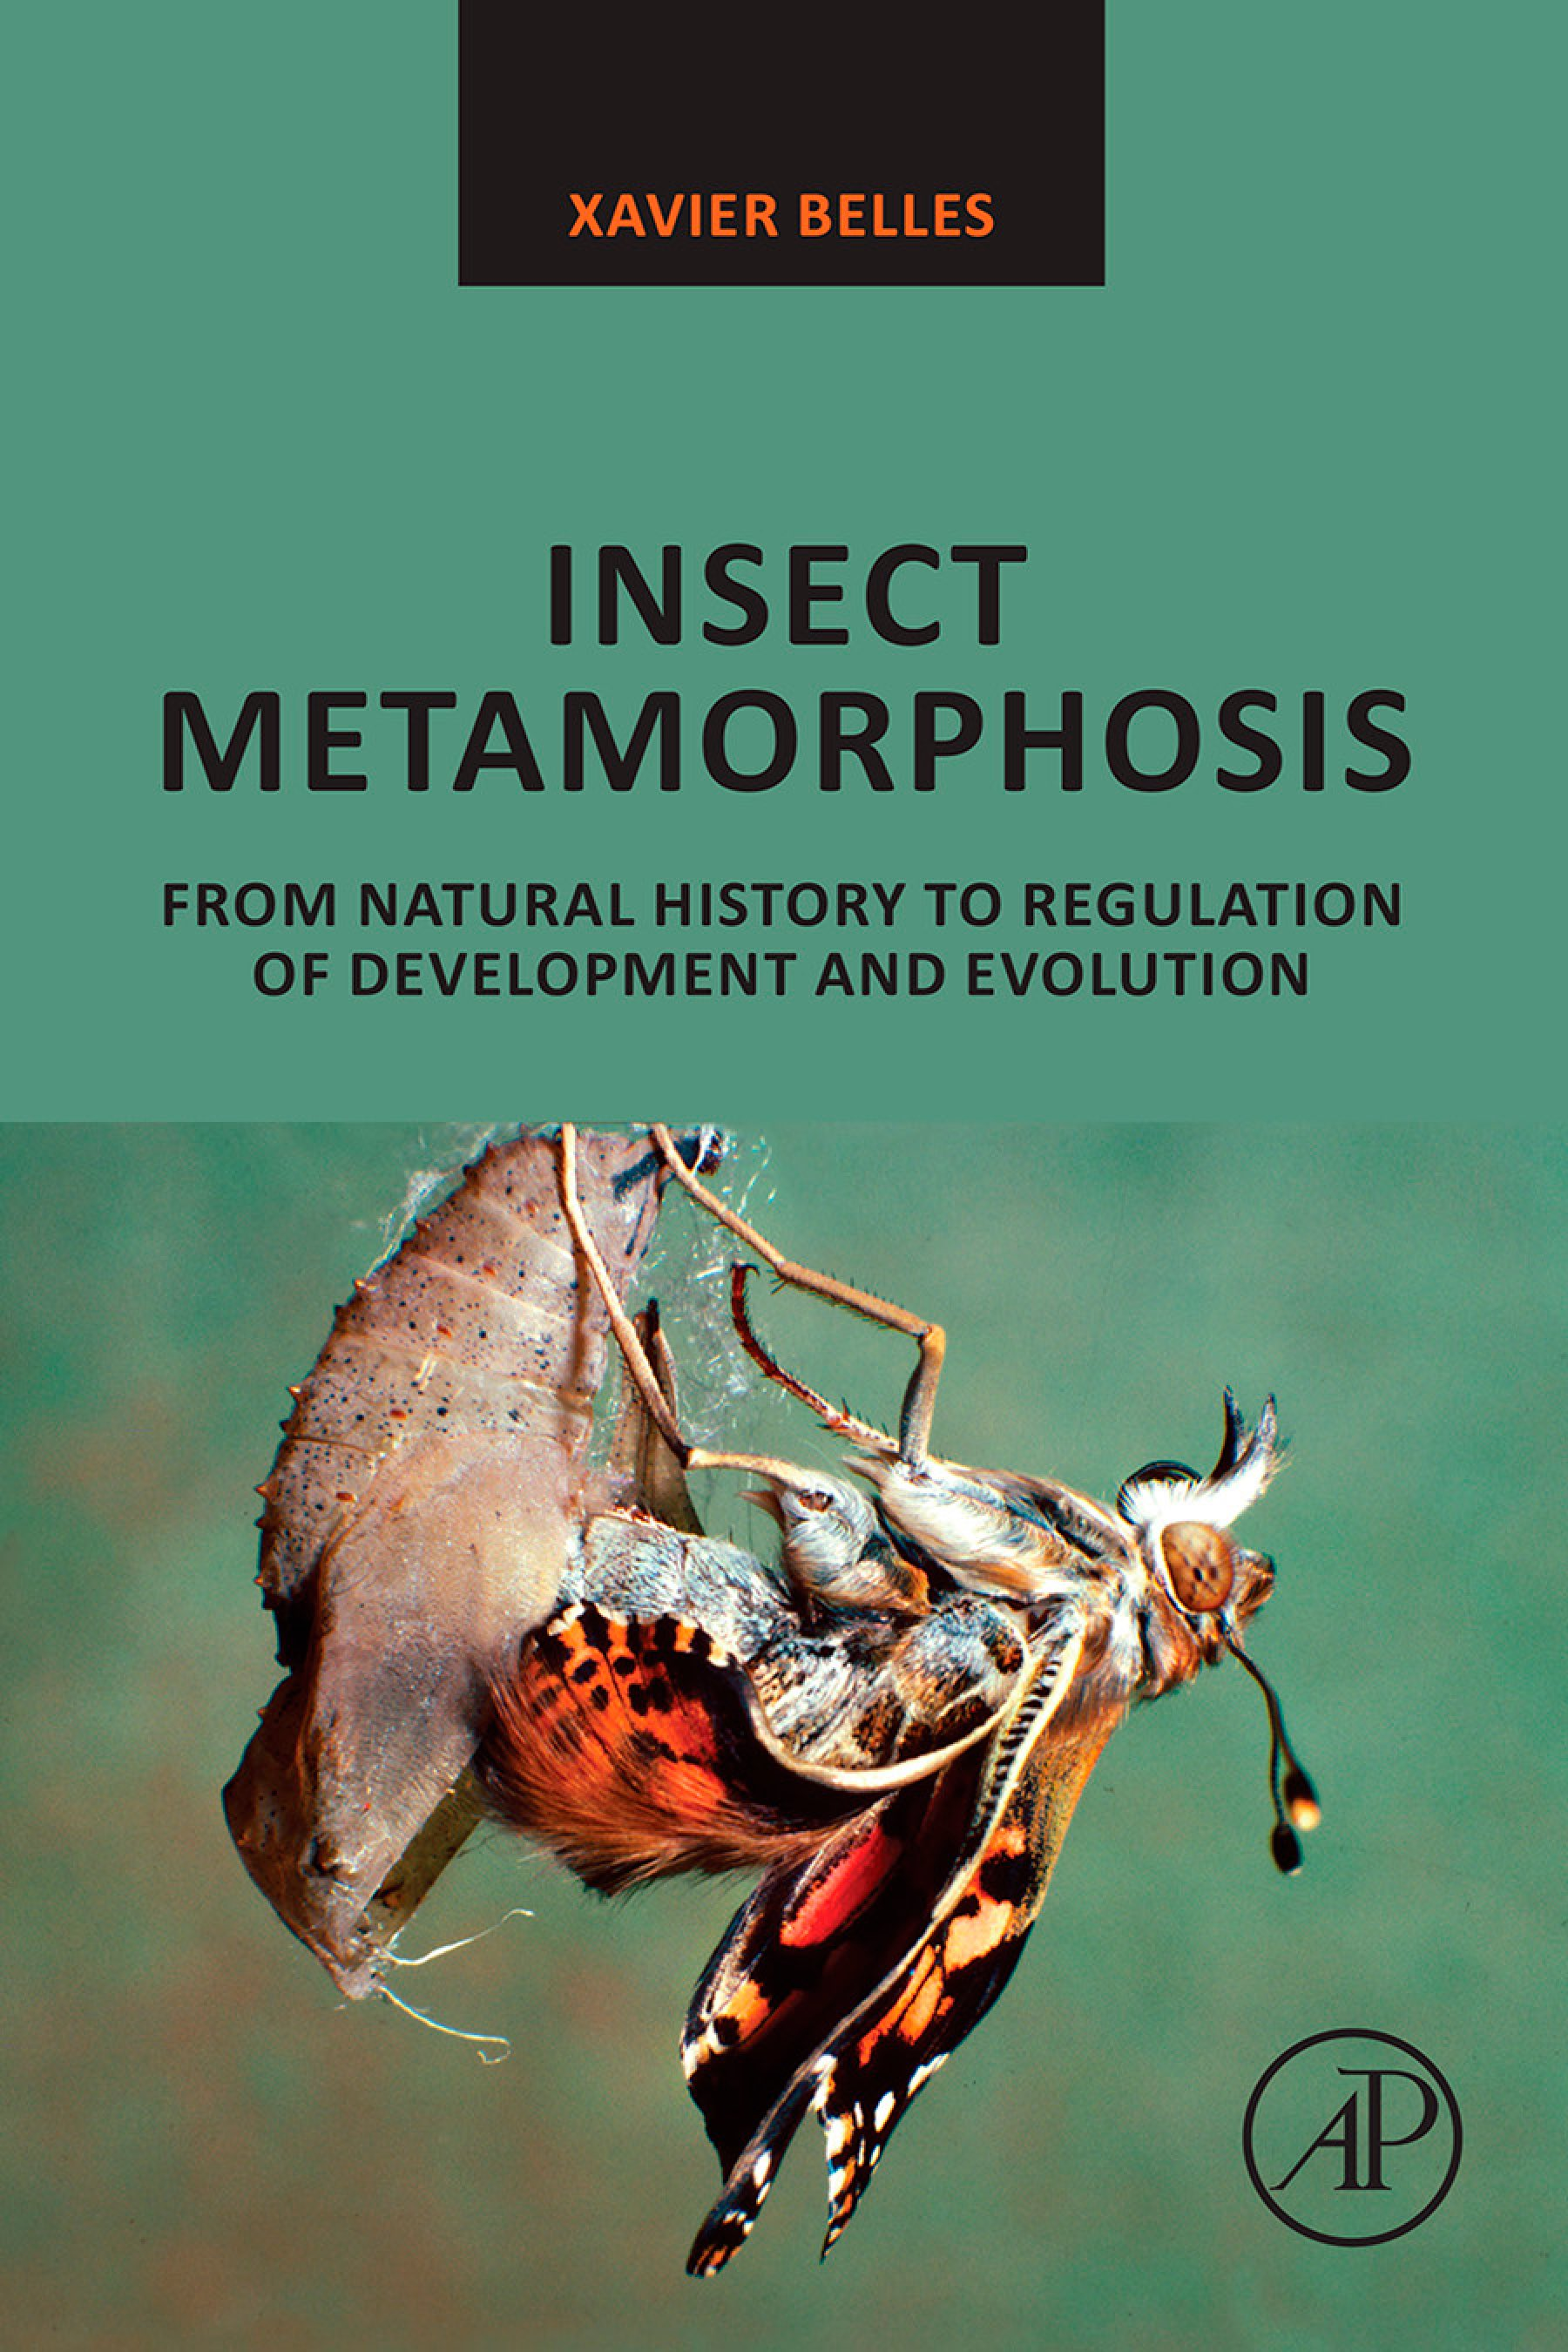 Insect Metamorphosis: From Natural History to Regulation of Development and Evolution